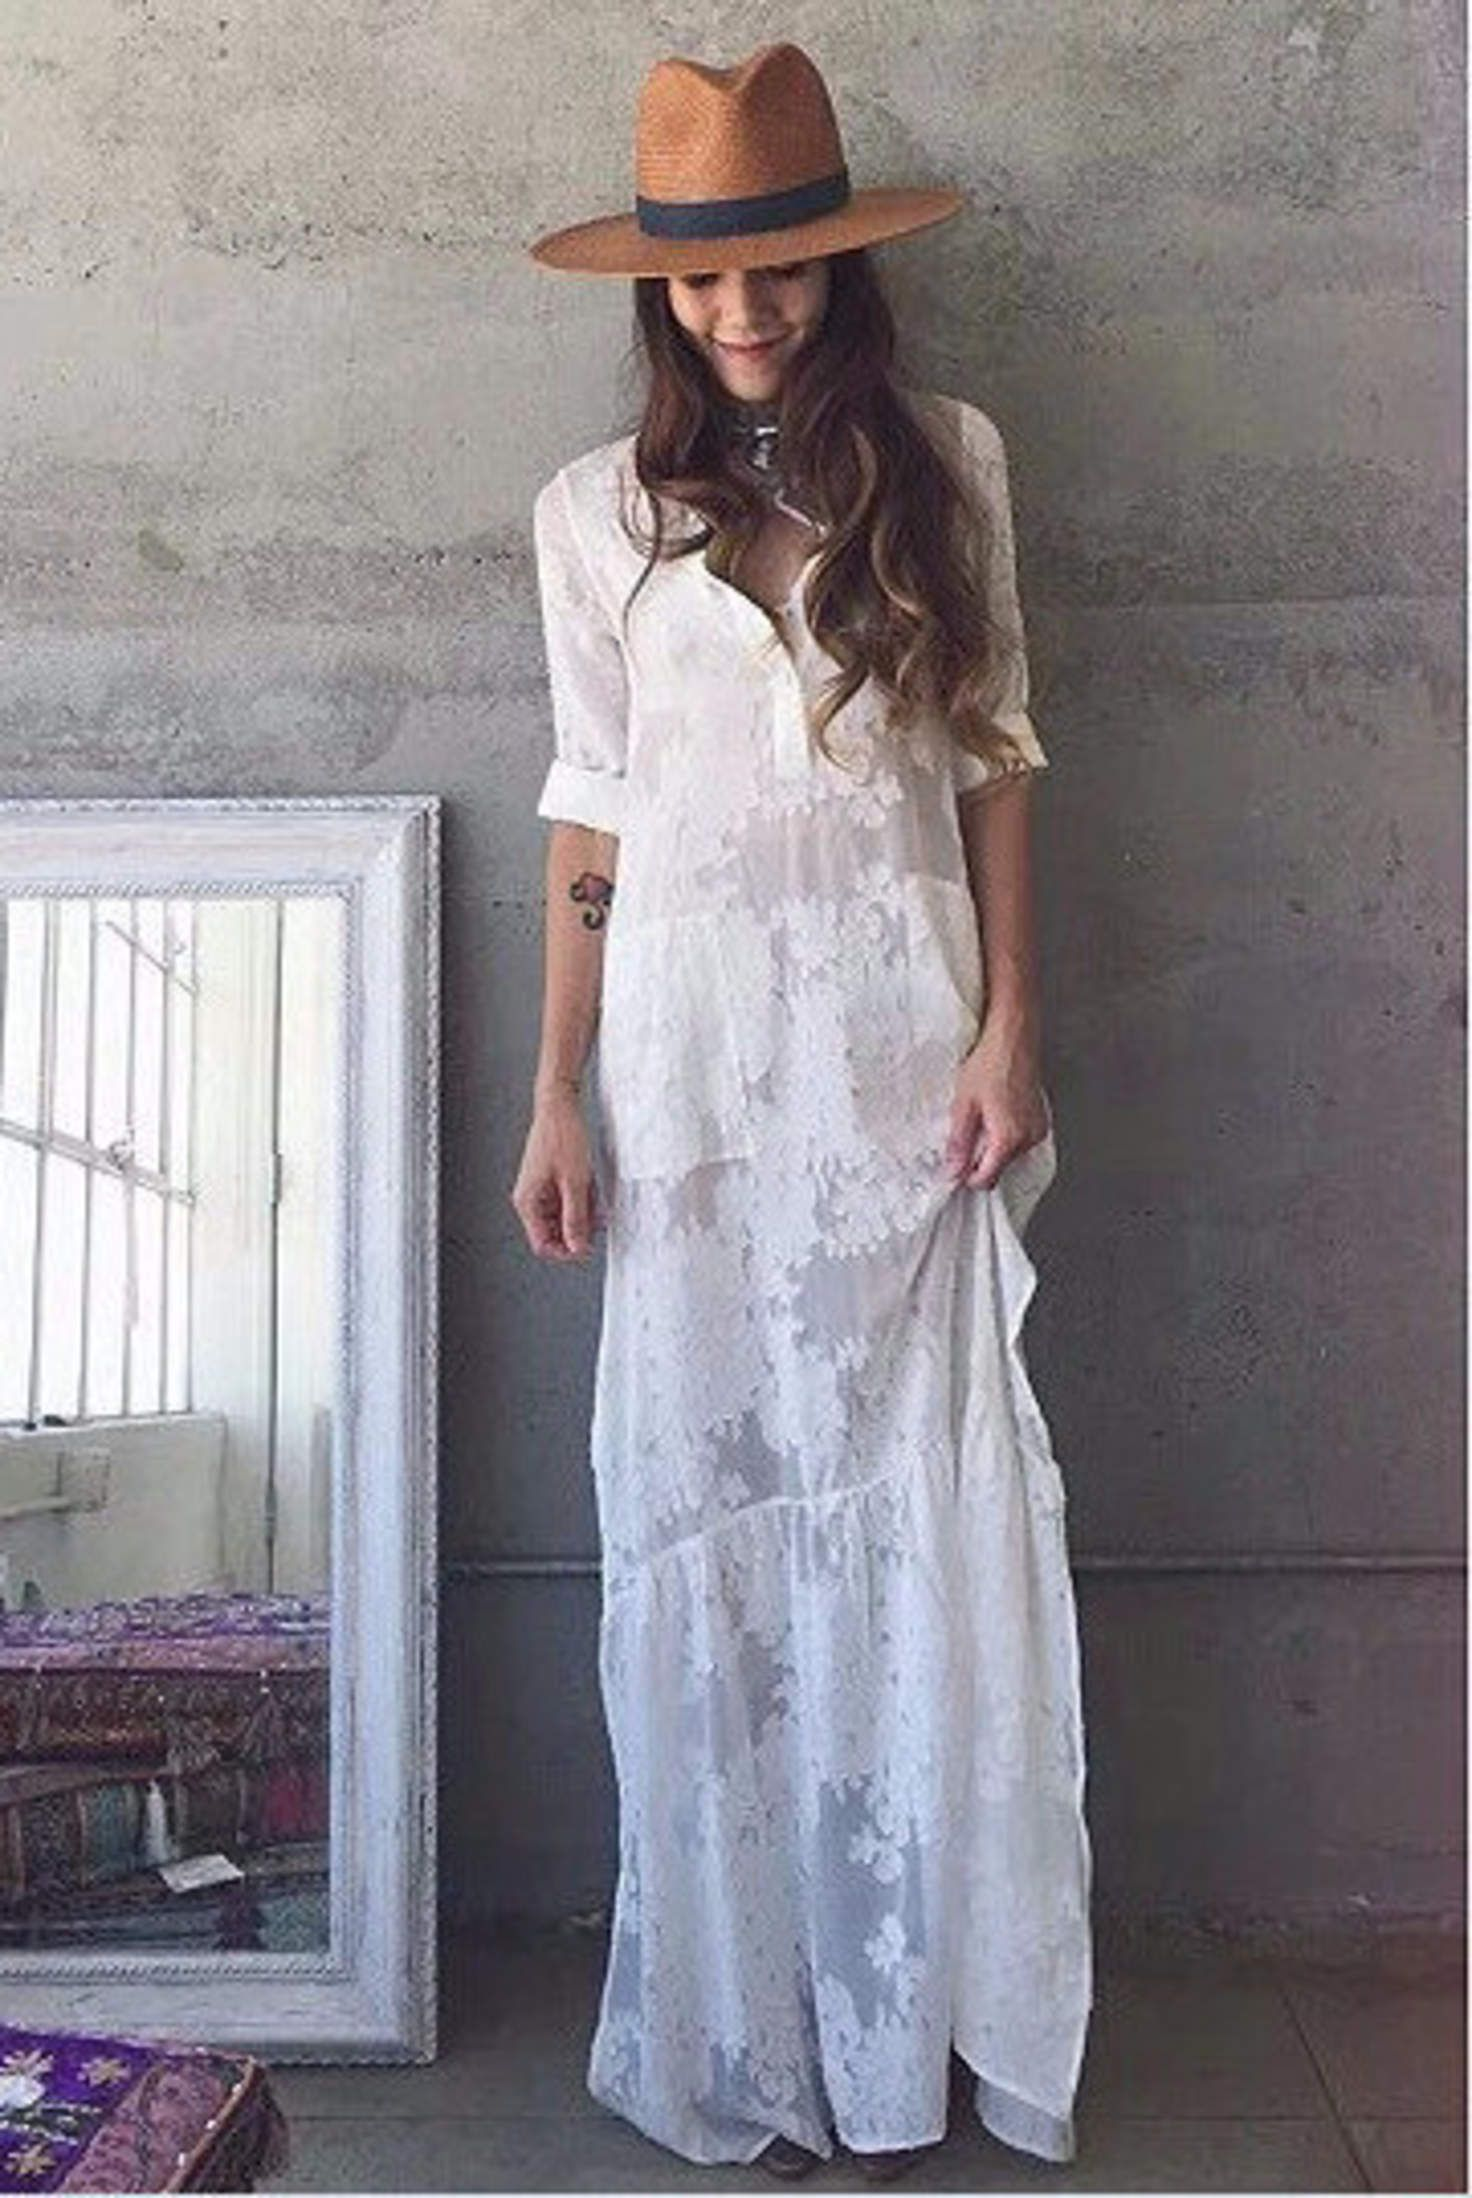 8c1bd57fe BOHO Slit Side Lace White Chiffon Maxi Dress Lapel Long Sleeve Beach Dress